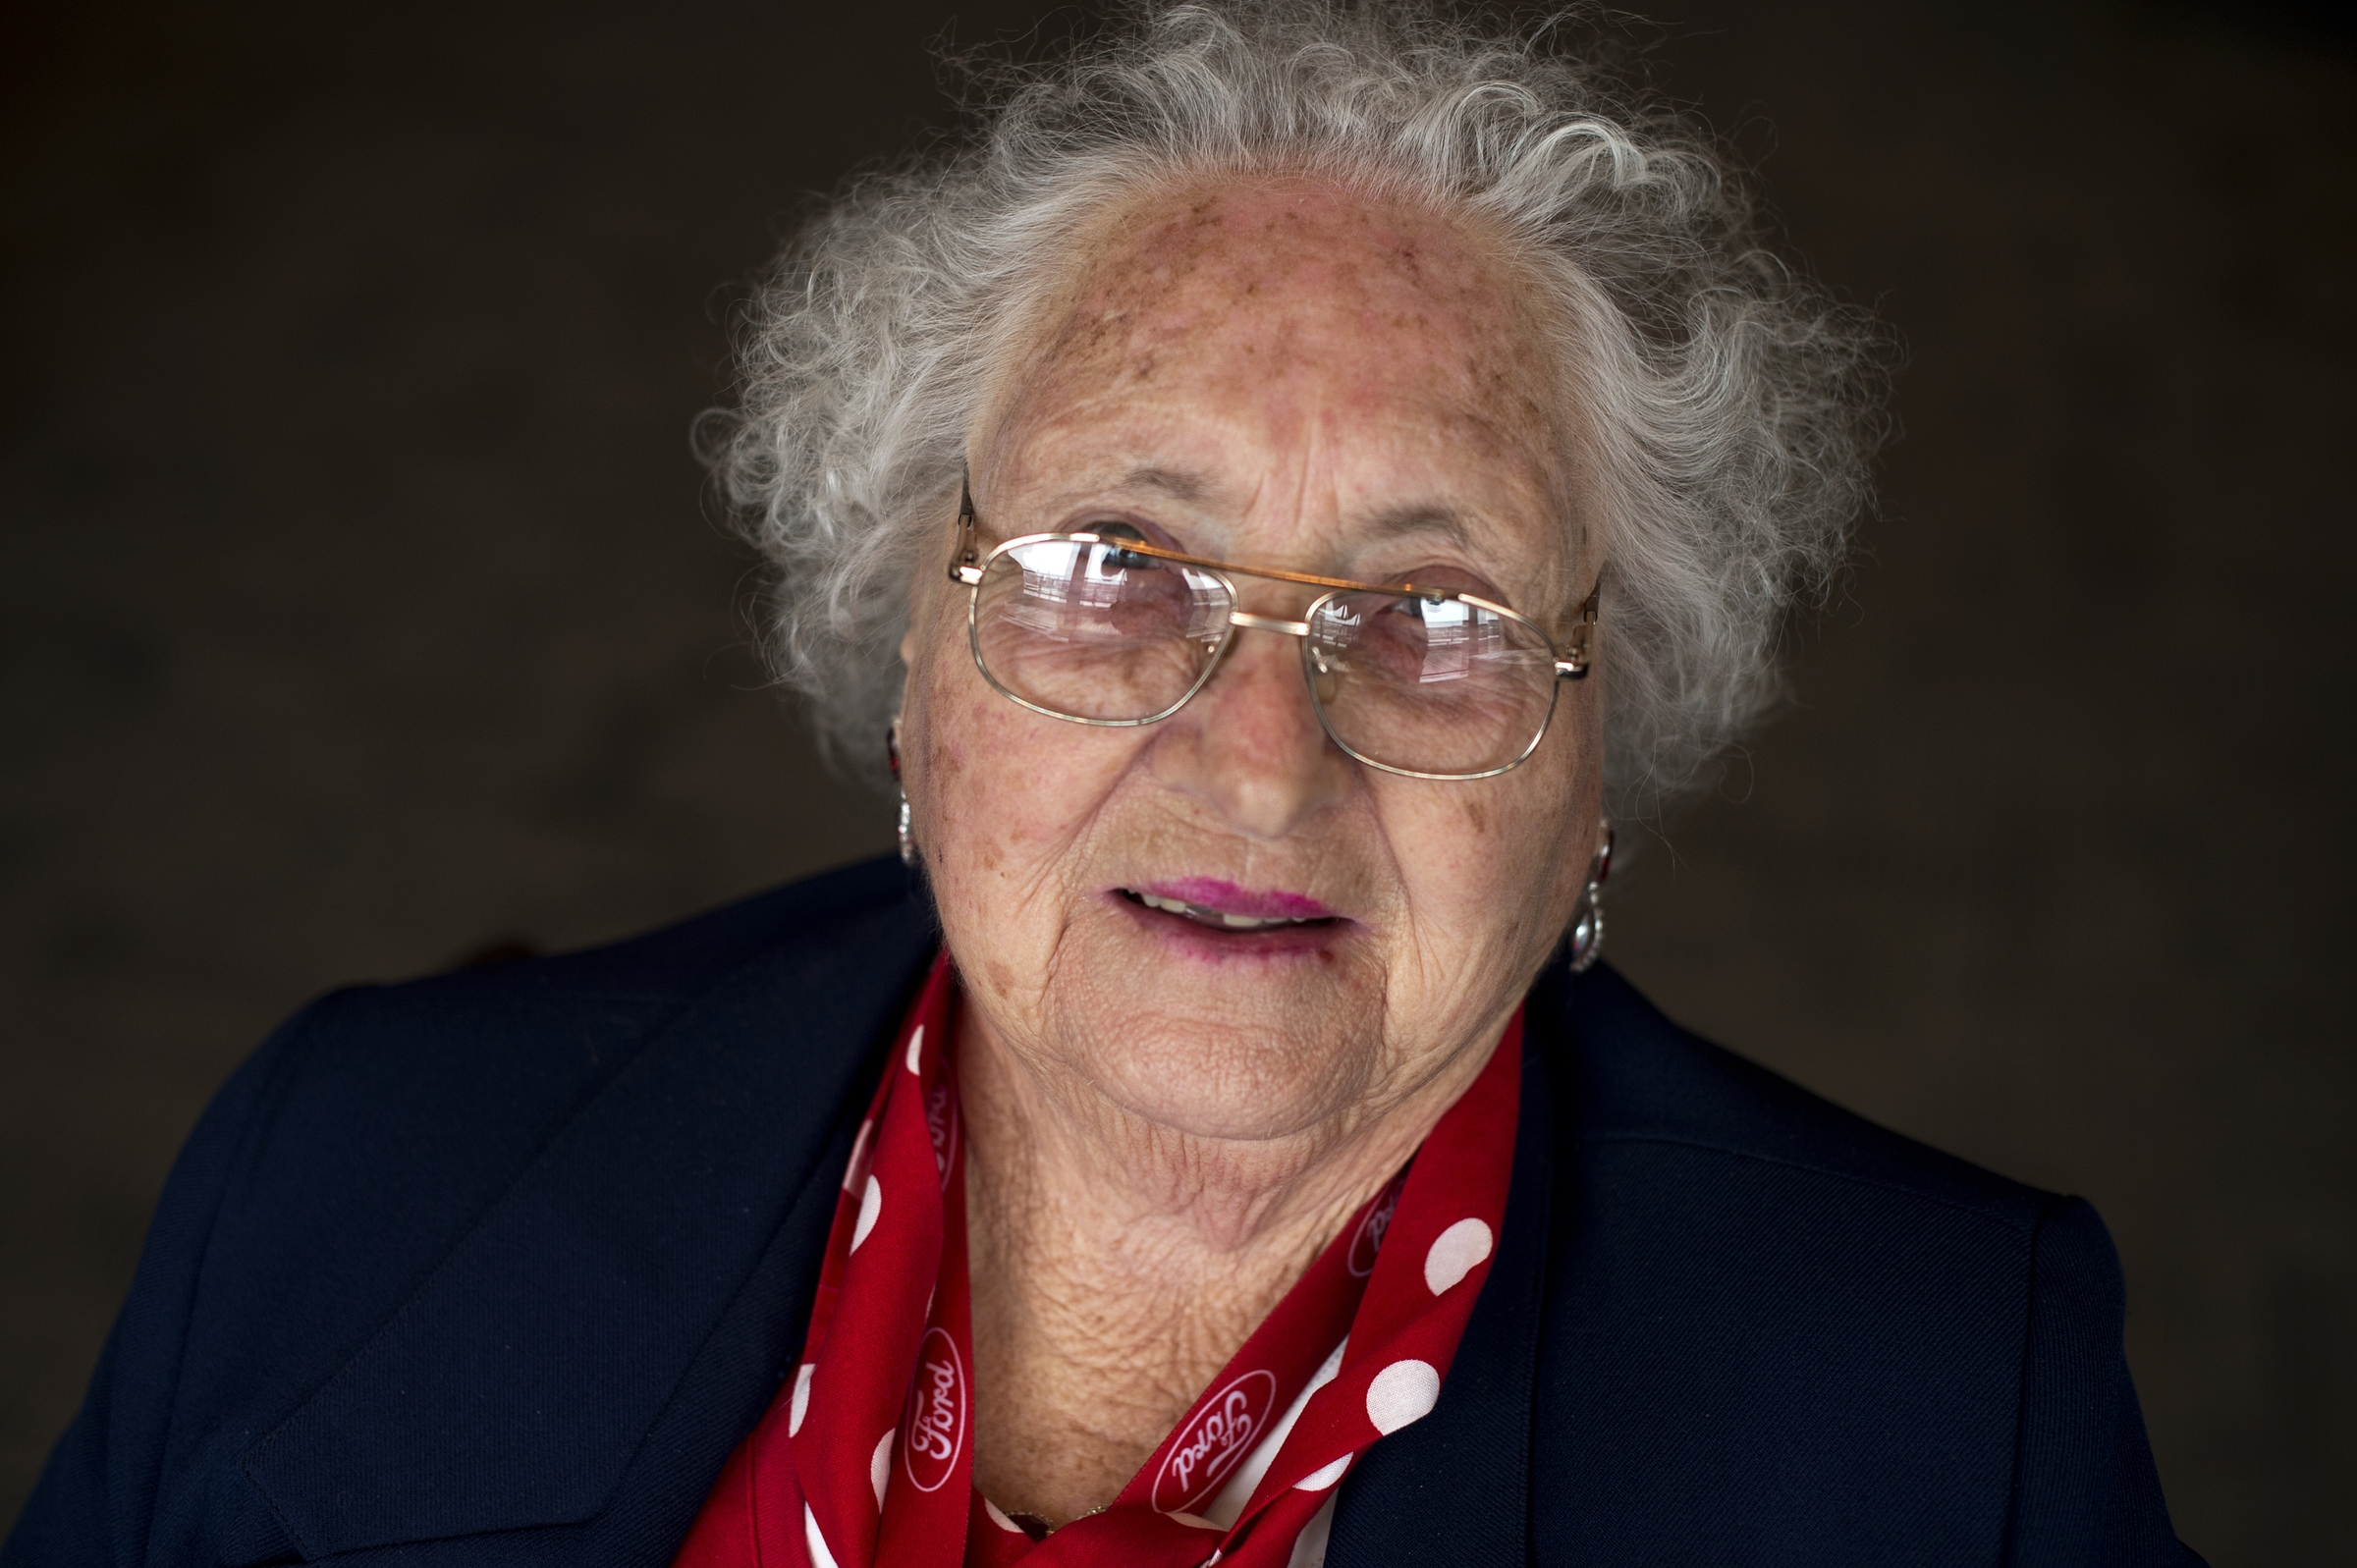 UNITED STATES - MARCH 22: Loraine Osborne, a World War II era Rosie the Riveter, is photographed during a lunch for a group of about 30 Rosies at the Library of Congress, March 22, 2016. They were part of an Honor Flight from Detroit who were on a tour of D.C. that included stops on Capitol Hill, the World War II Memorial, and Arlington National Cemetery. (Photo By Tom Williams/CQ Roll Call)